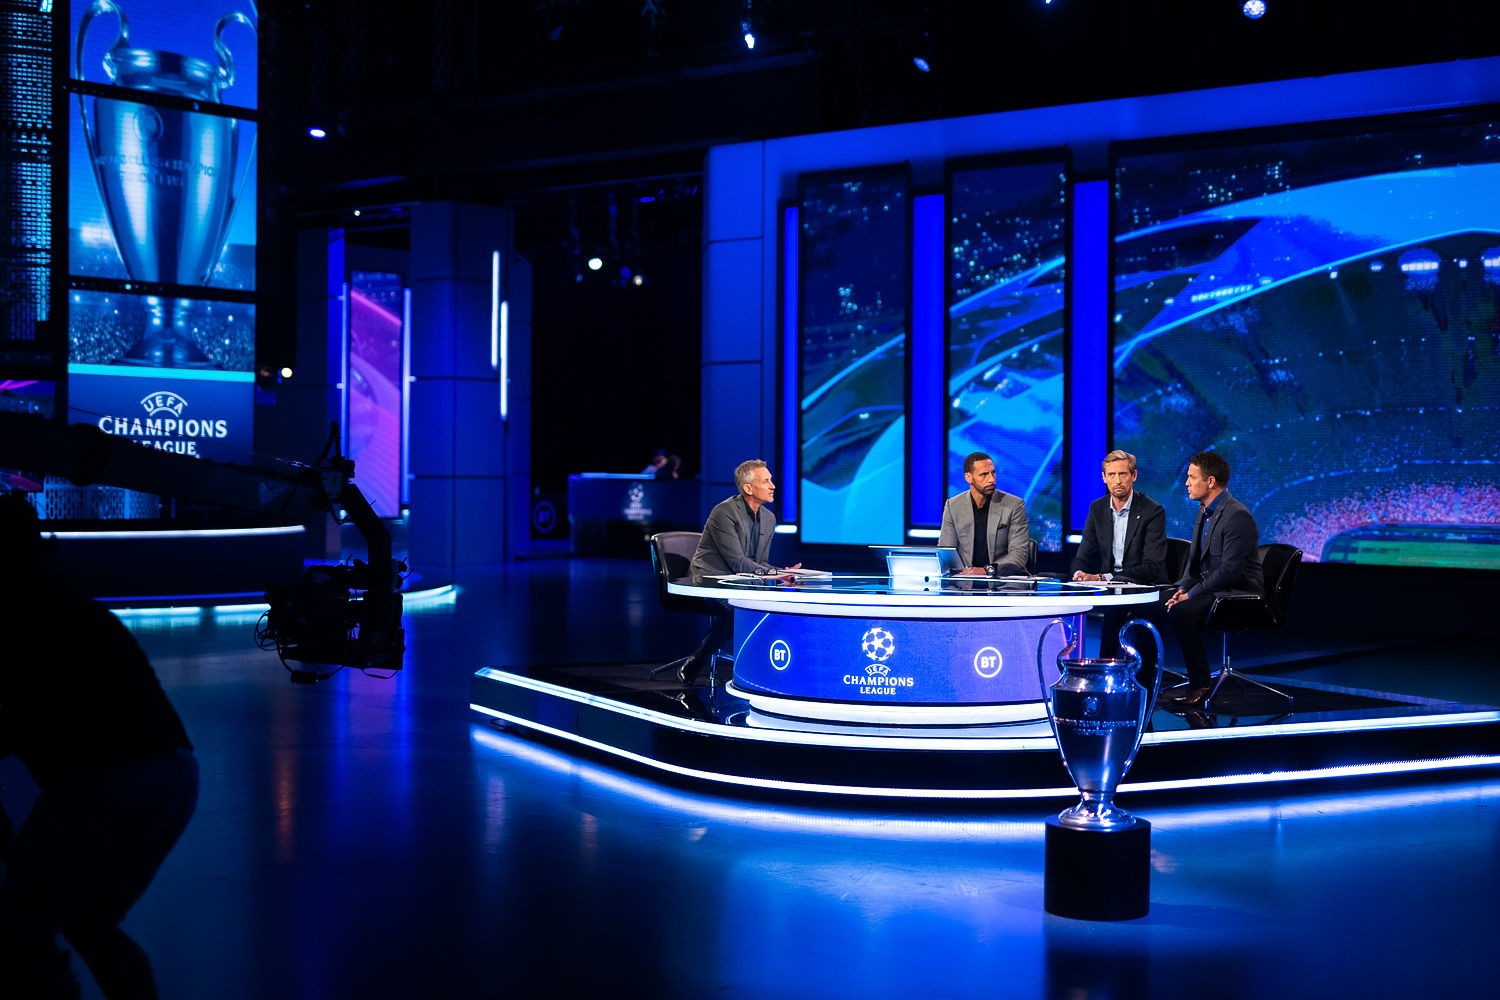 BT Sport_UEFA Champions League rights